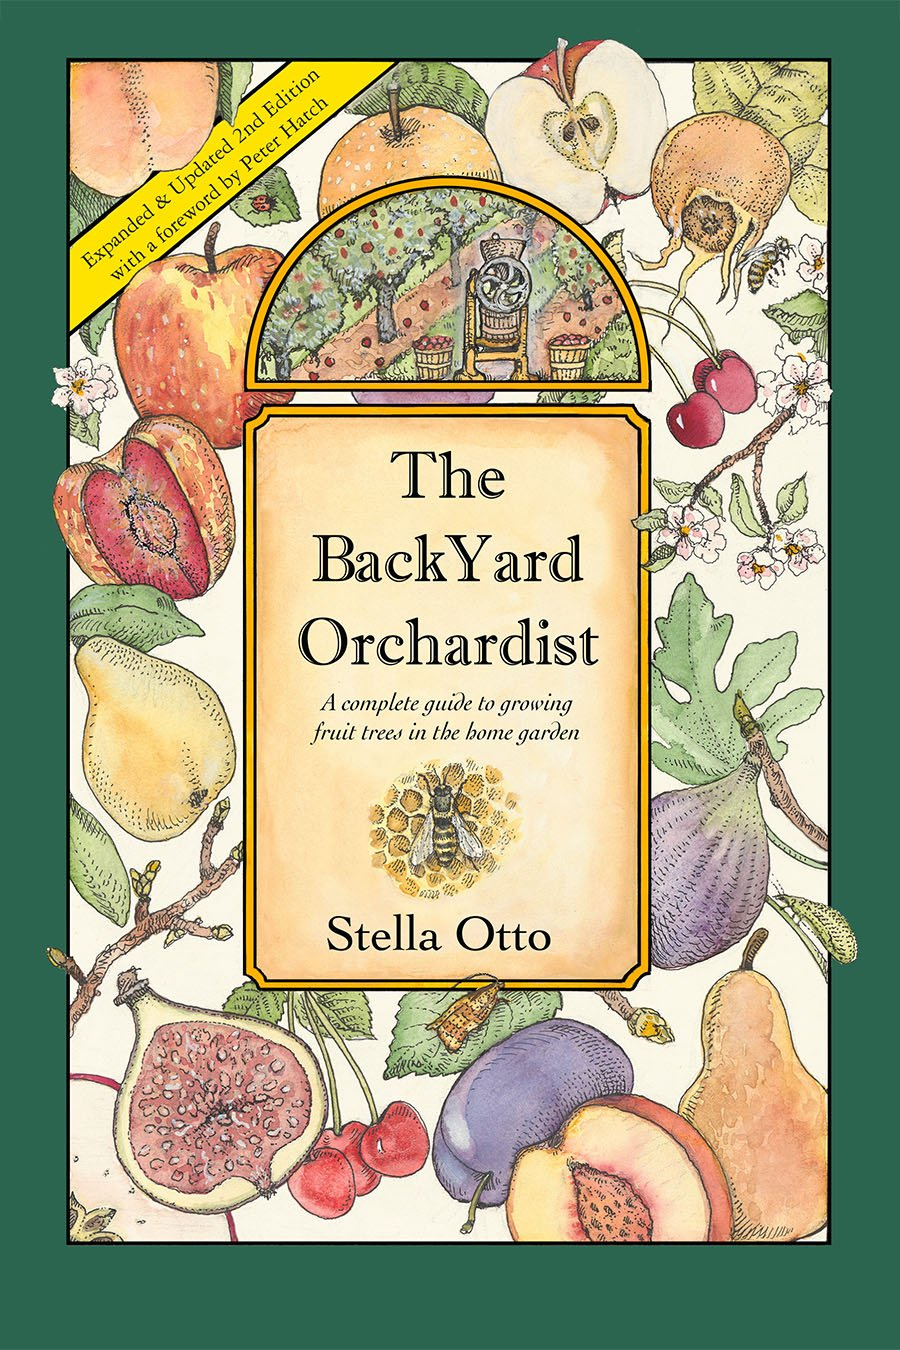 The Backyard Orchardist: A complete guide to growing fruit trees in the home garden, 2nd Edition